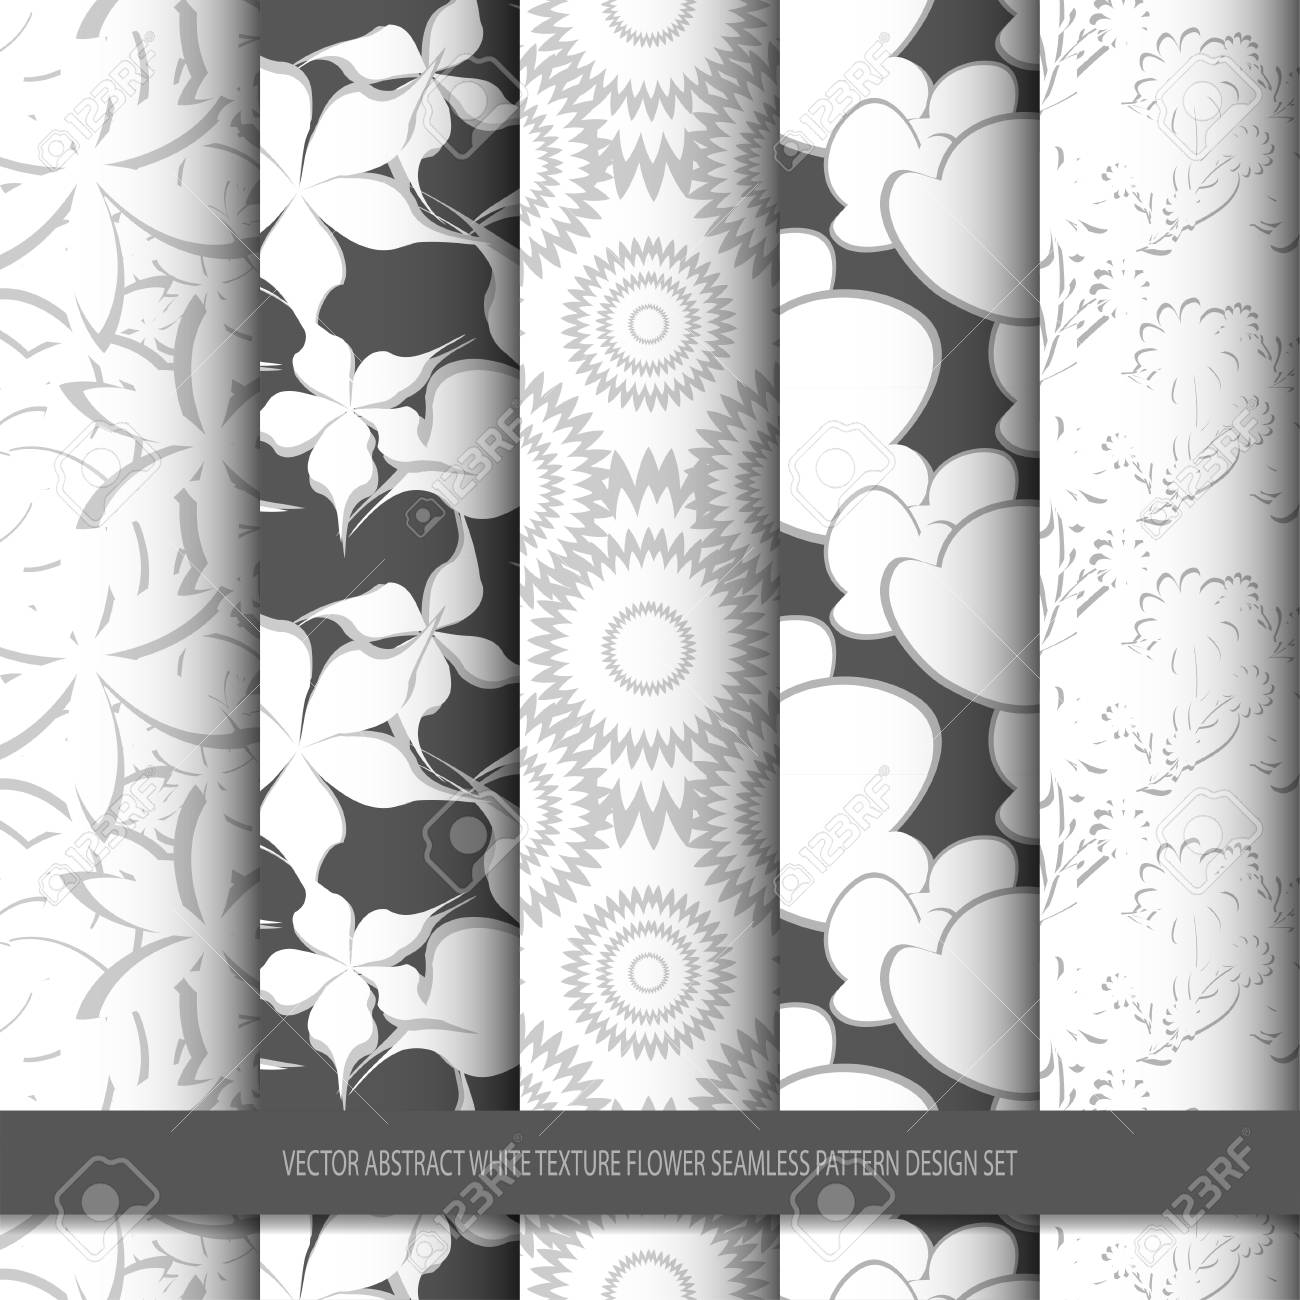 Vector Abstract White Texture Flower Seamless Pattern Design Set